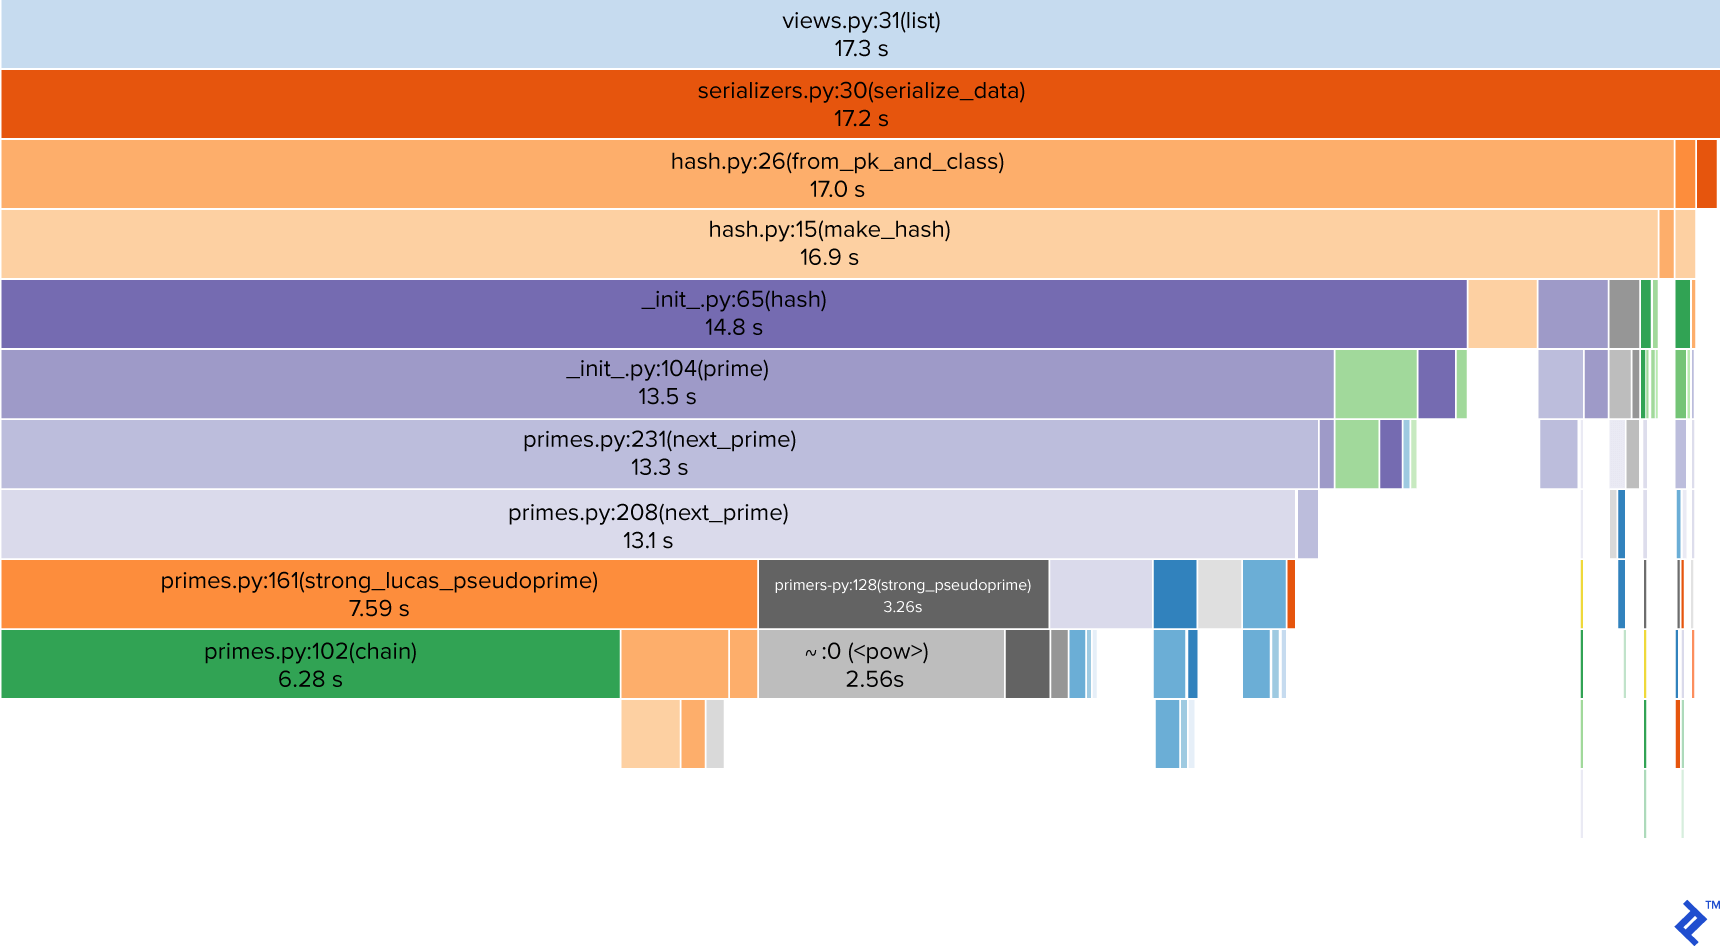 Image of profiling results